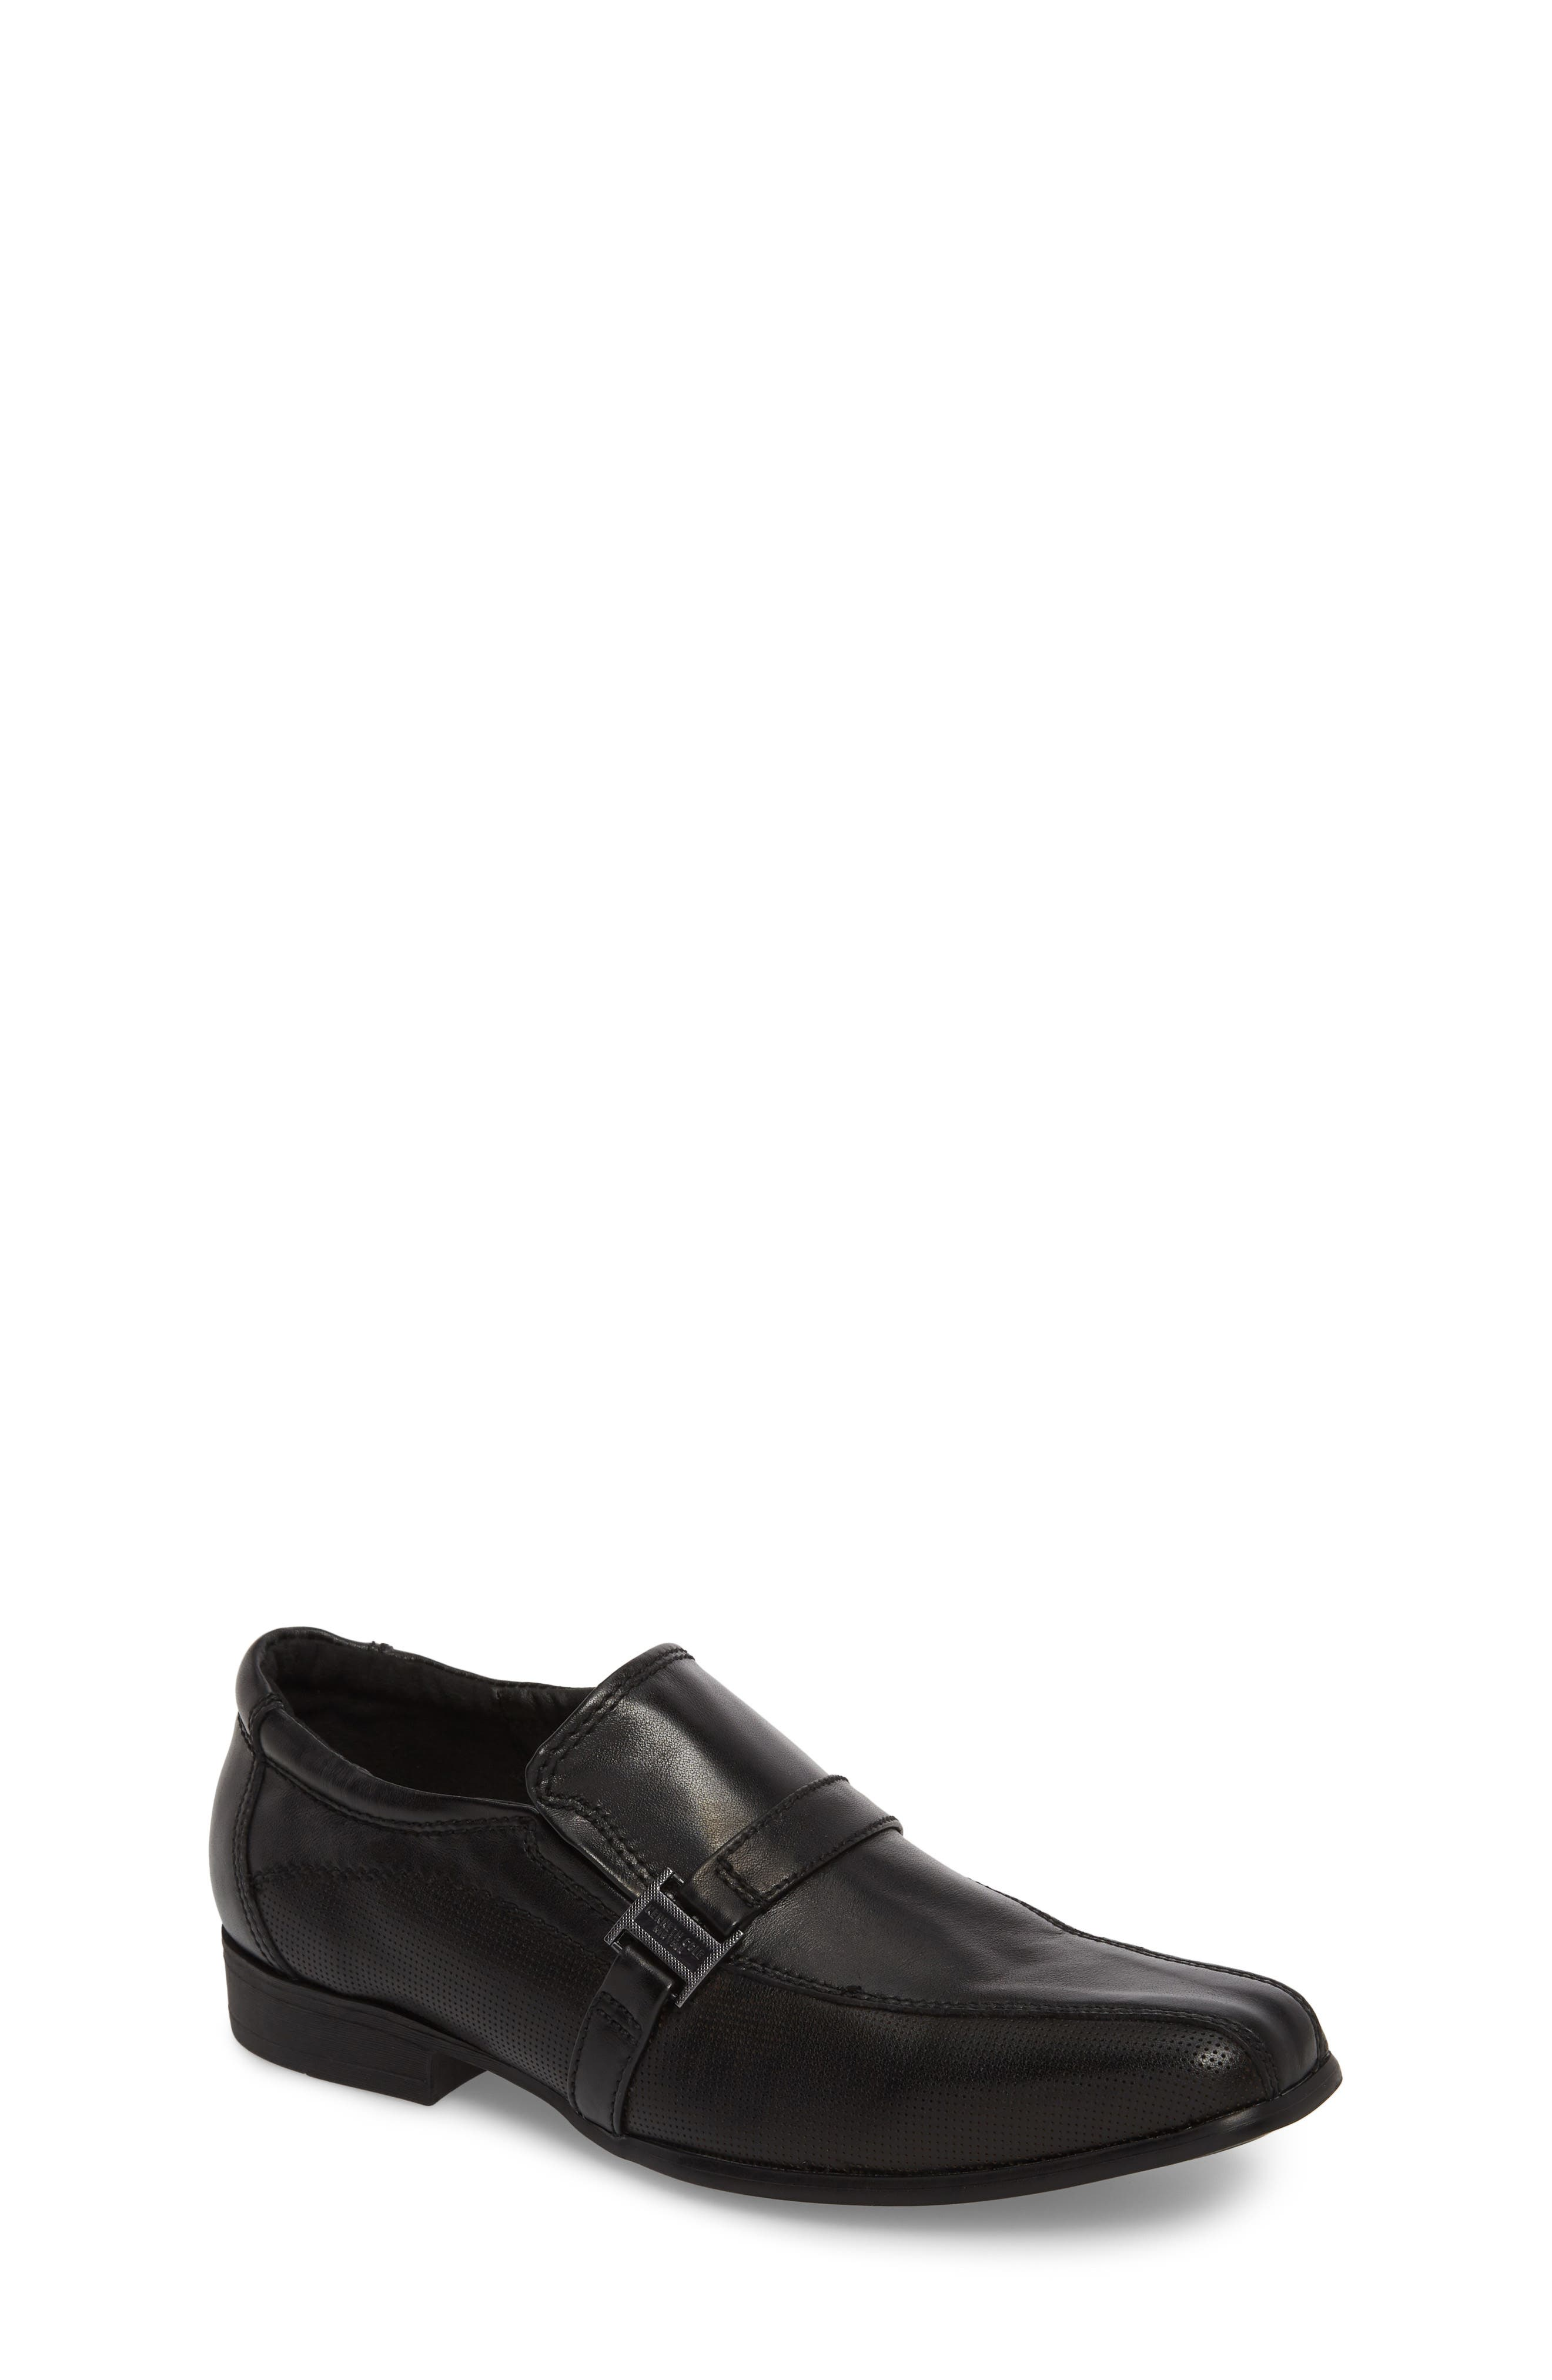 KENNETH COLE NEW YORK Magic News Venetian Loafer, Main, color, BLACK